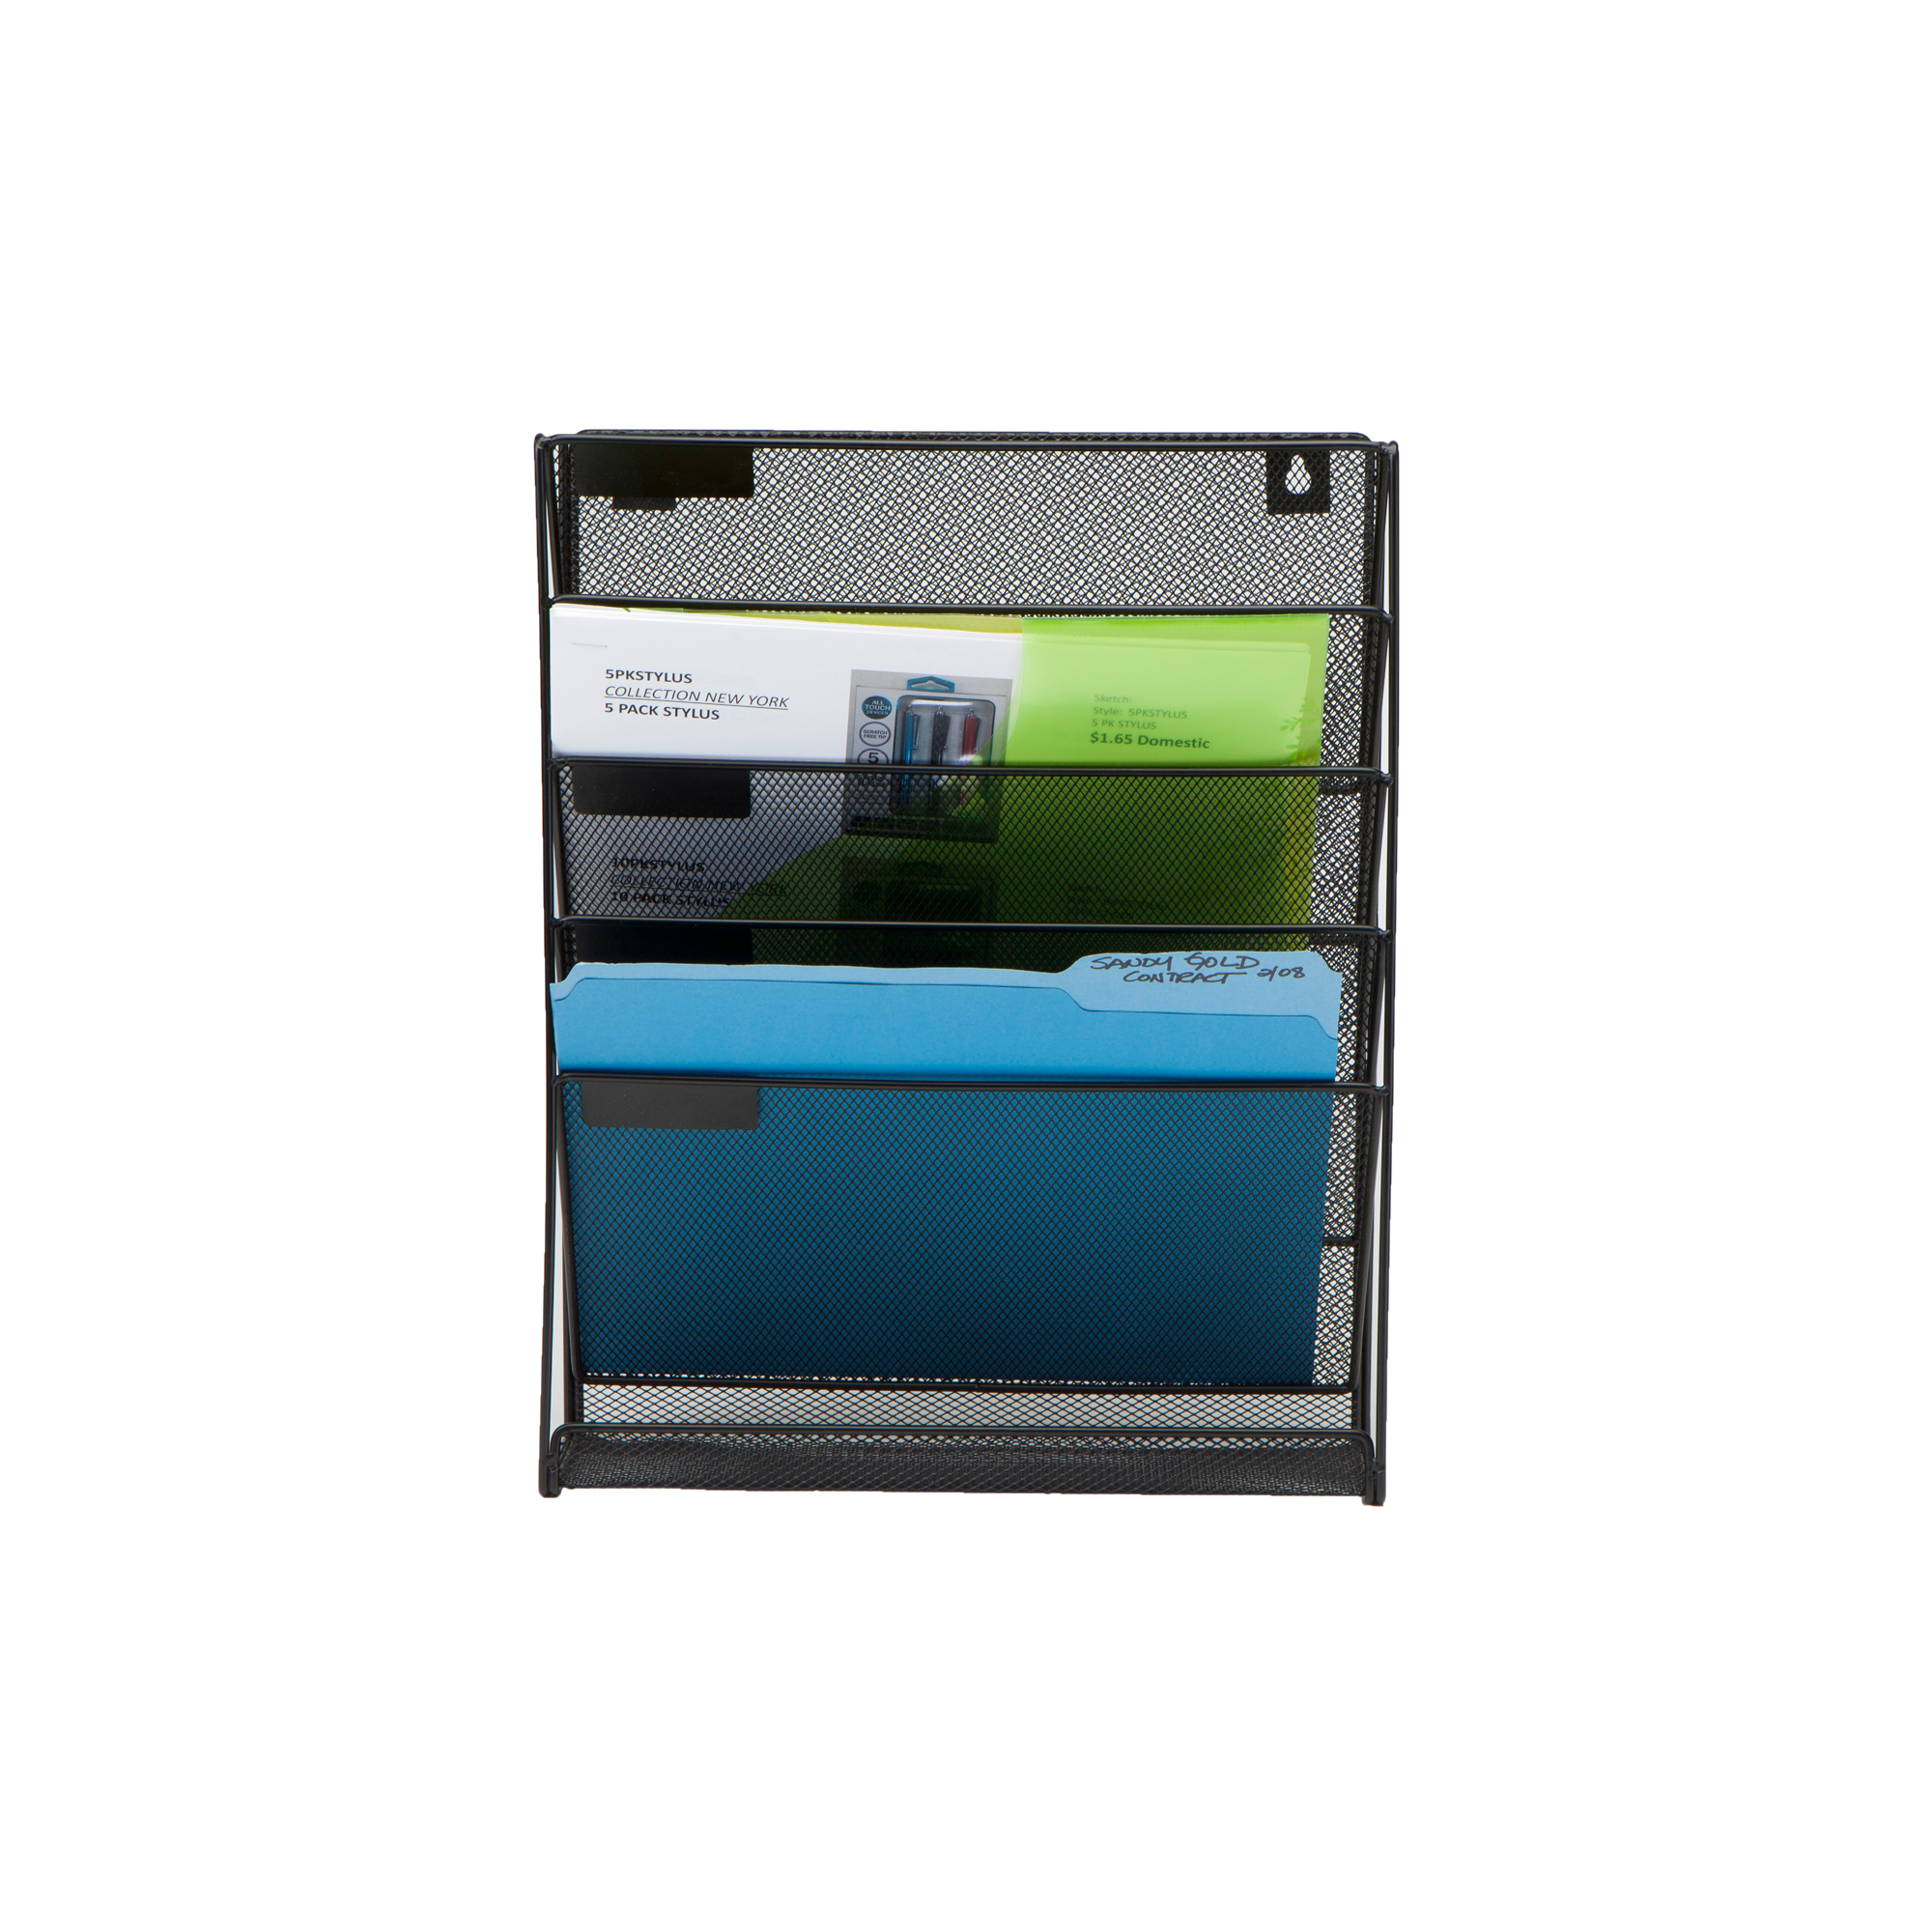 Mind Reader Wall Mounted Newspaper and Magazine Rack for Bathroom, Office, Entryway, Black by EMS Mind Reader LLC